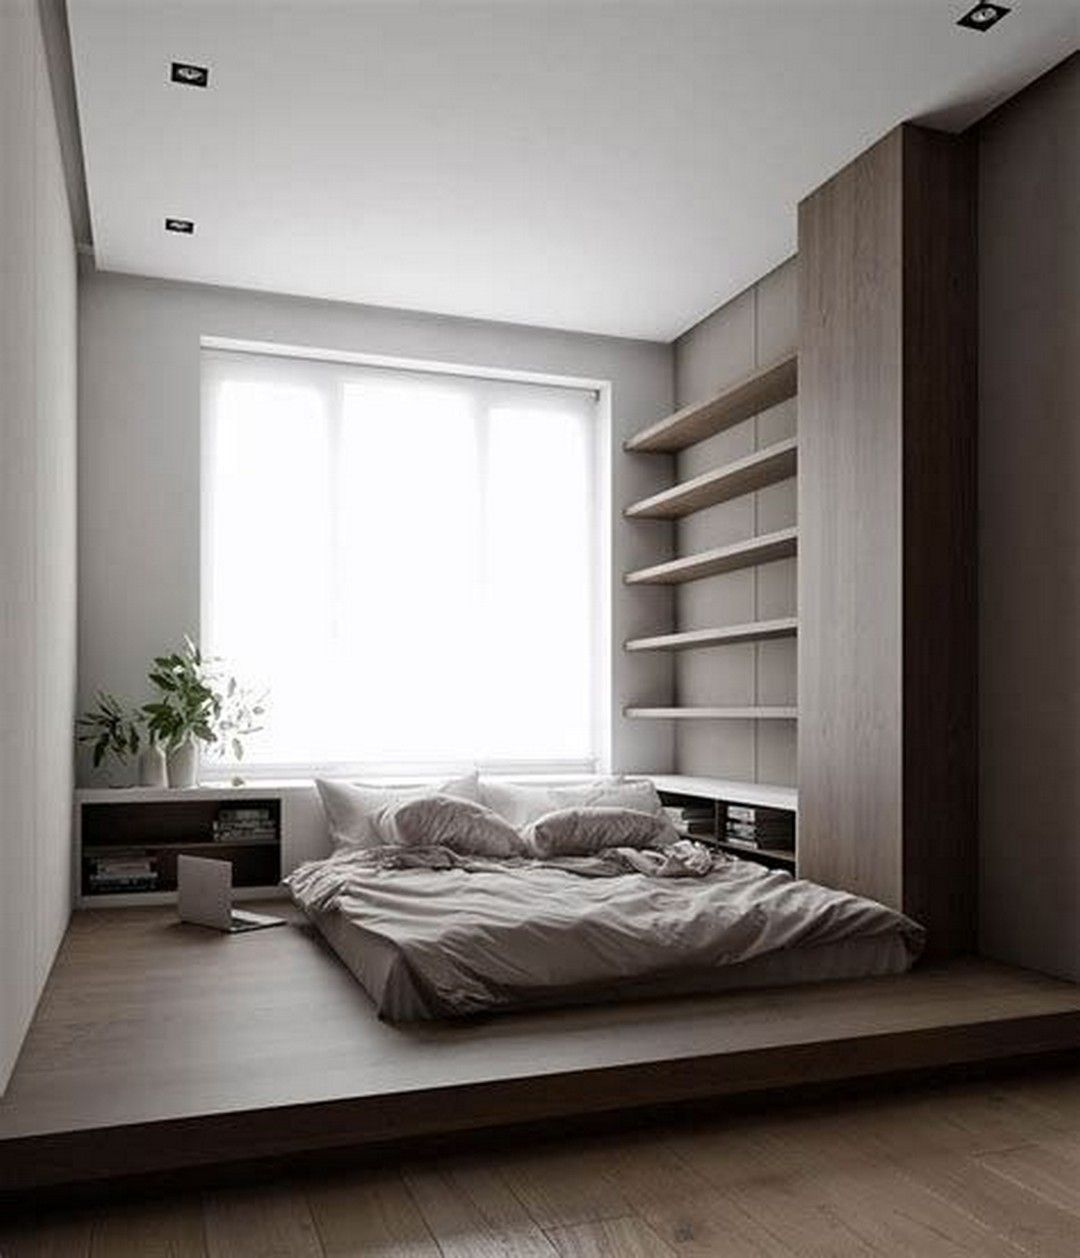 The Minimalistic Japanese Bedroom Theme Is Now Purchase Popularity And Distressing Int Japanese Style Bedroom Minimalist Bedroom Design Interior Design Bedroom